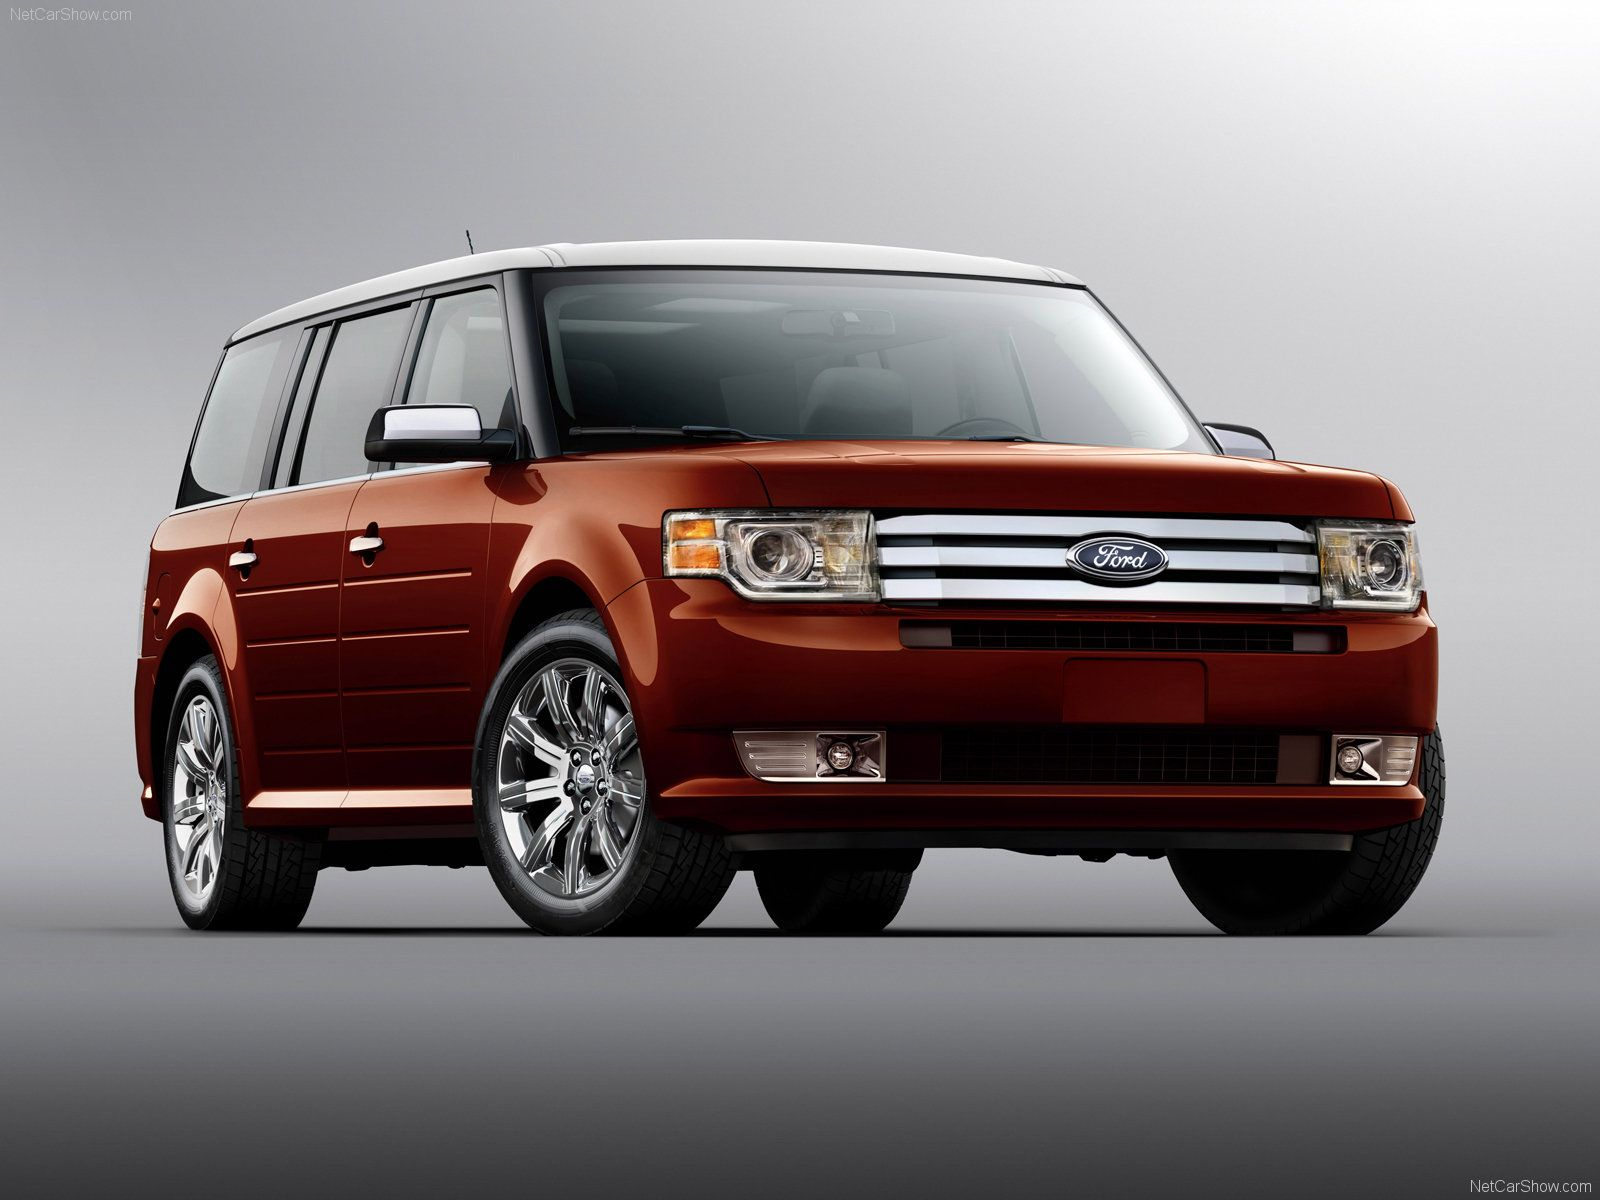 2016 ford flex price 2016 ford flex redesign 2016 ford flex release date 2016 ford flex review